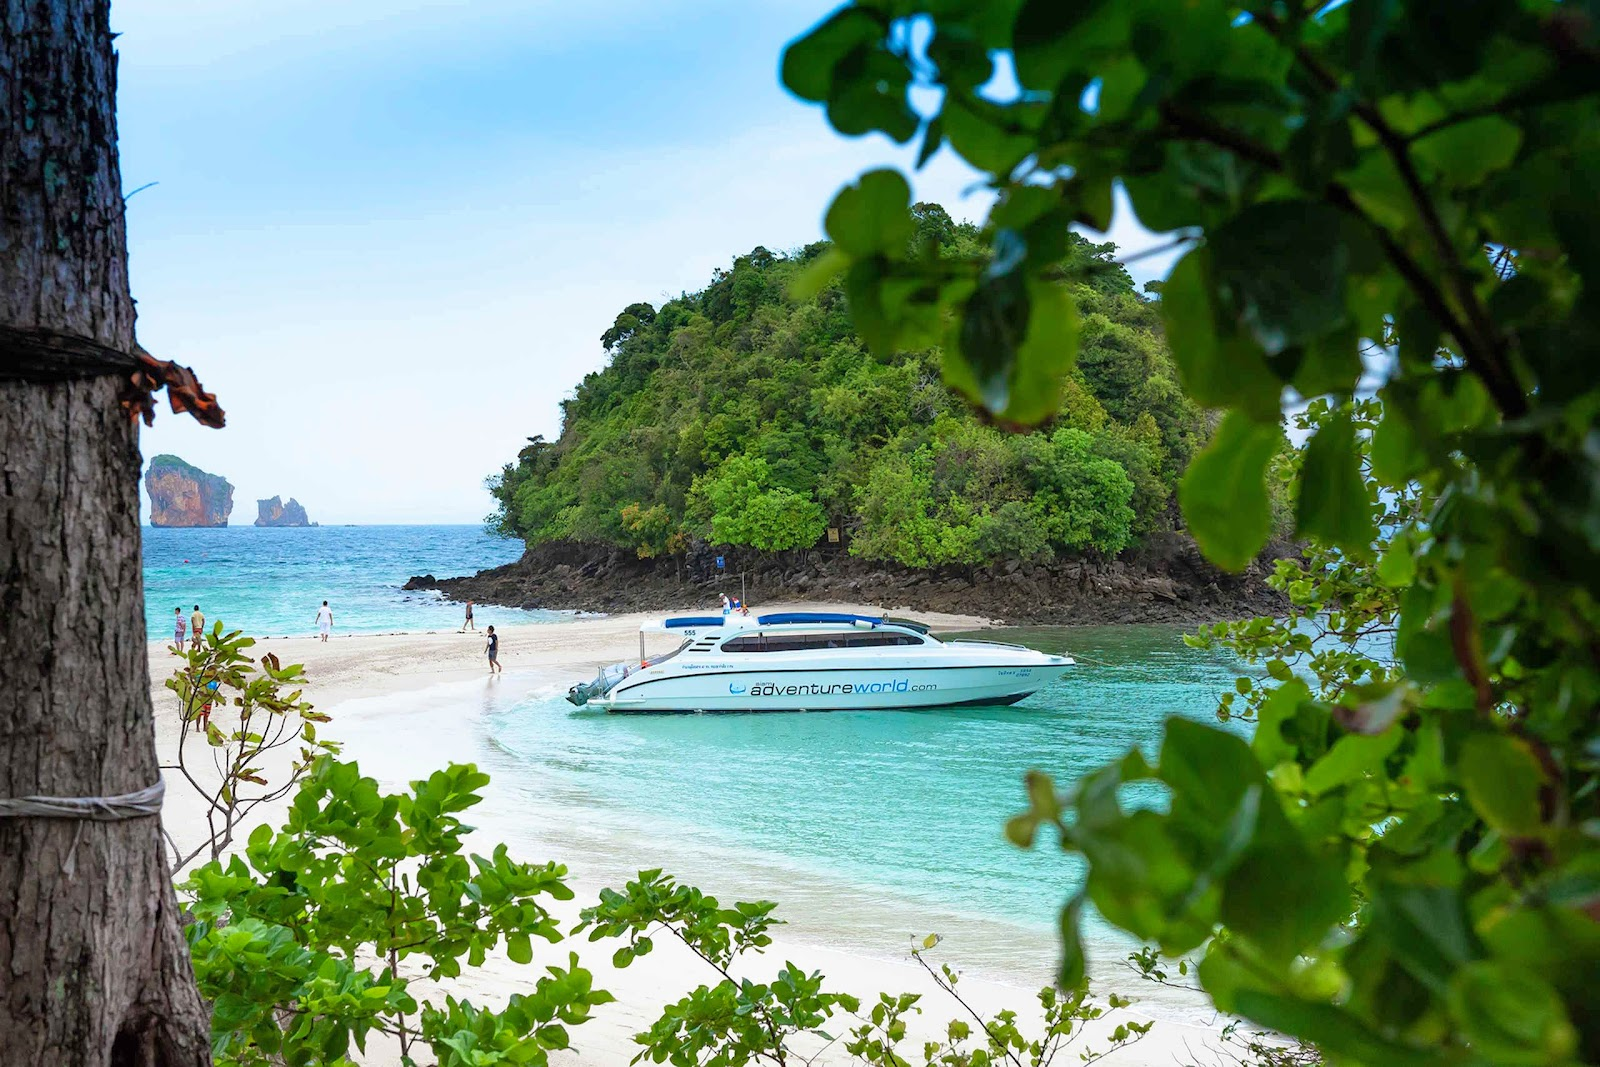 Early Bird Tour to 4 Islands & Railay Beach by Siam Adventure World from Phuket